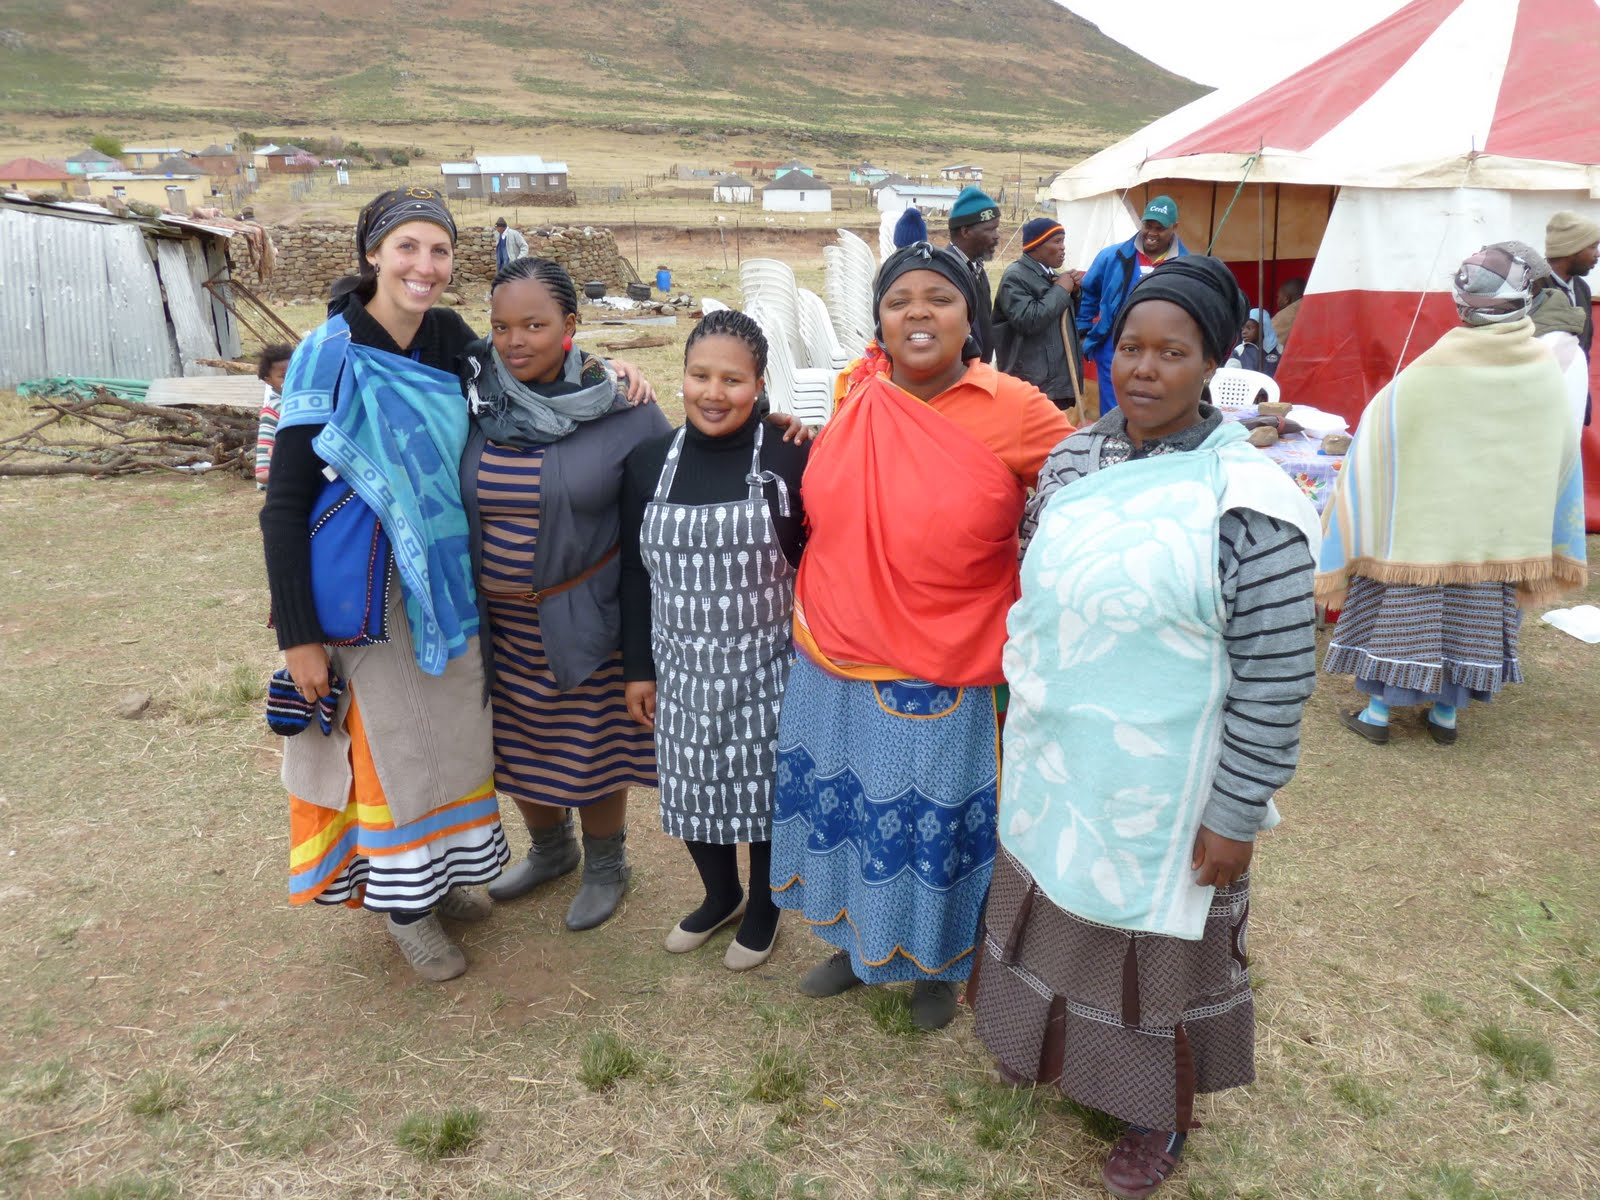 Themba Tales and the South Africa travel blog of Catherine Robar